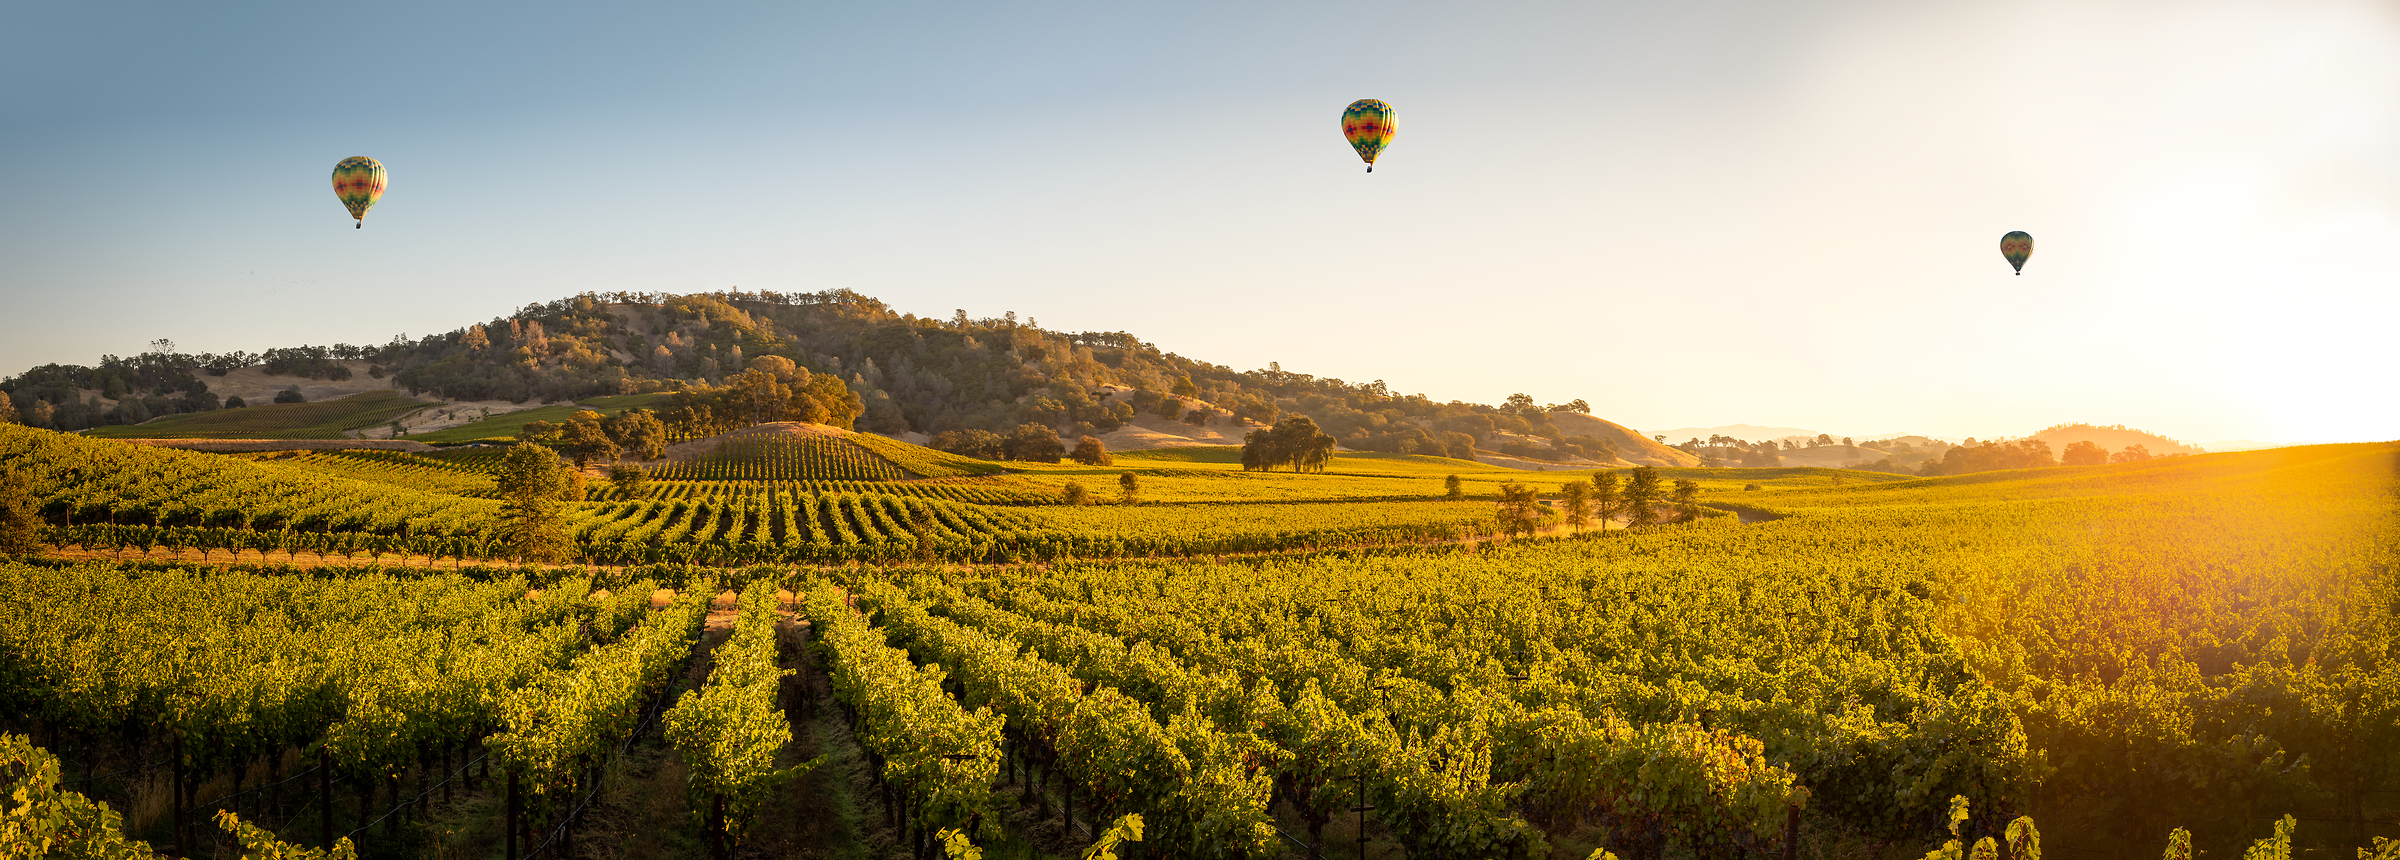 230 megapixels! A very high resolution, large-format VAST photo of a Napa Valley vineyard with hot air balloons and sunlight; landscape photo created by Justin Katz in Pope Valley, Napa Valley, California